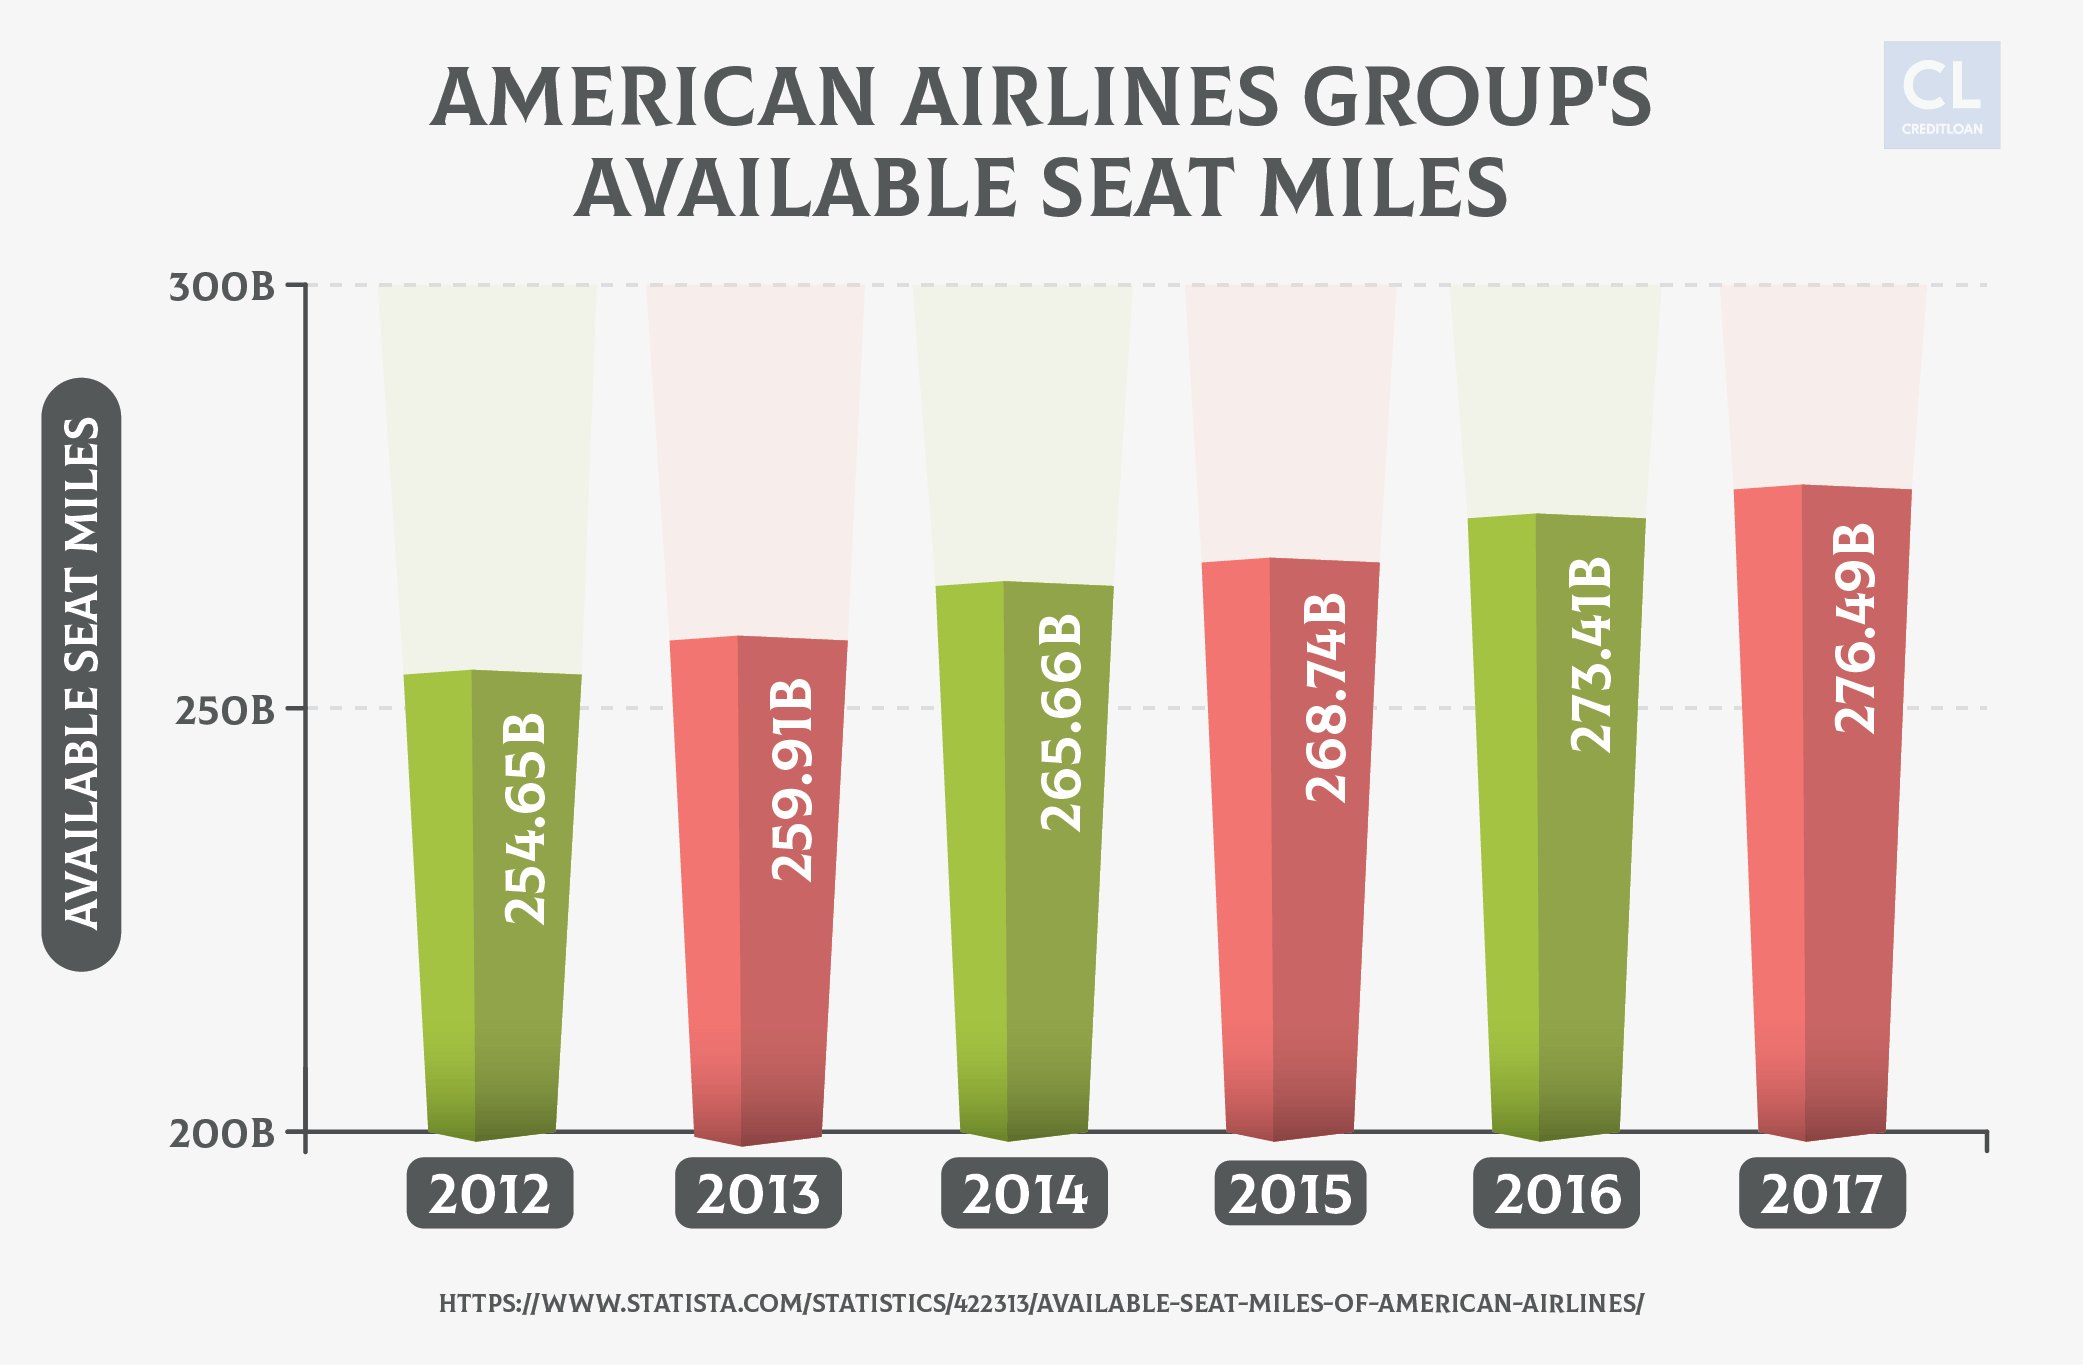 American Airlines Group's Available Seat Miles 2012-2017